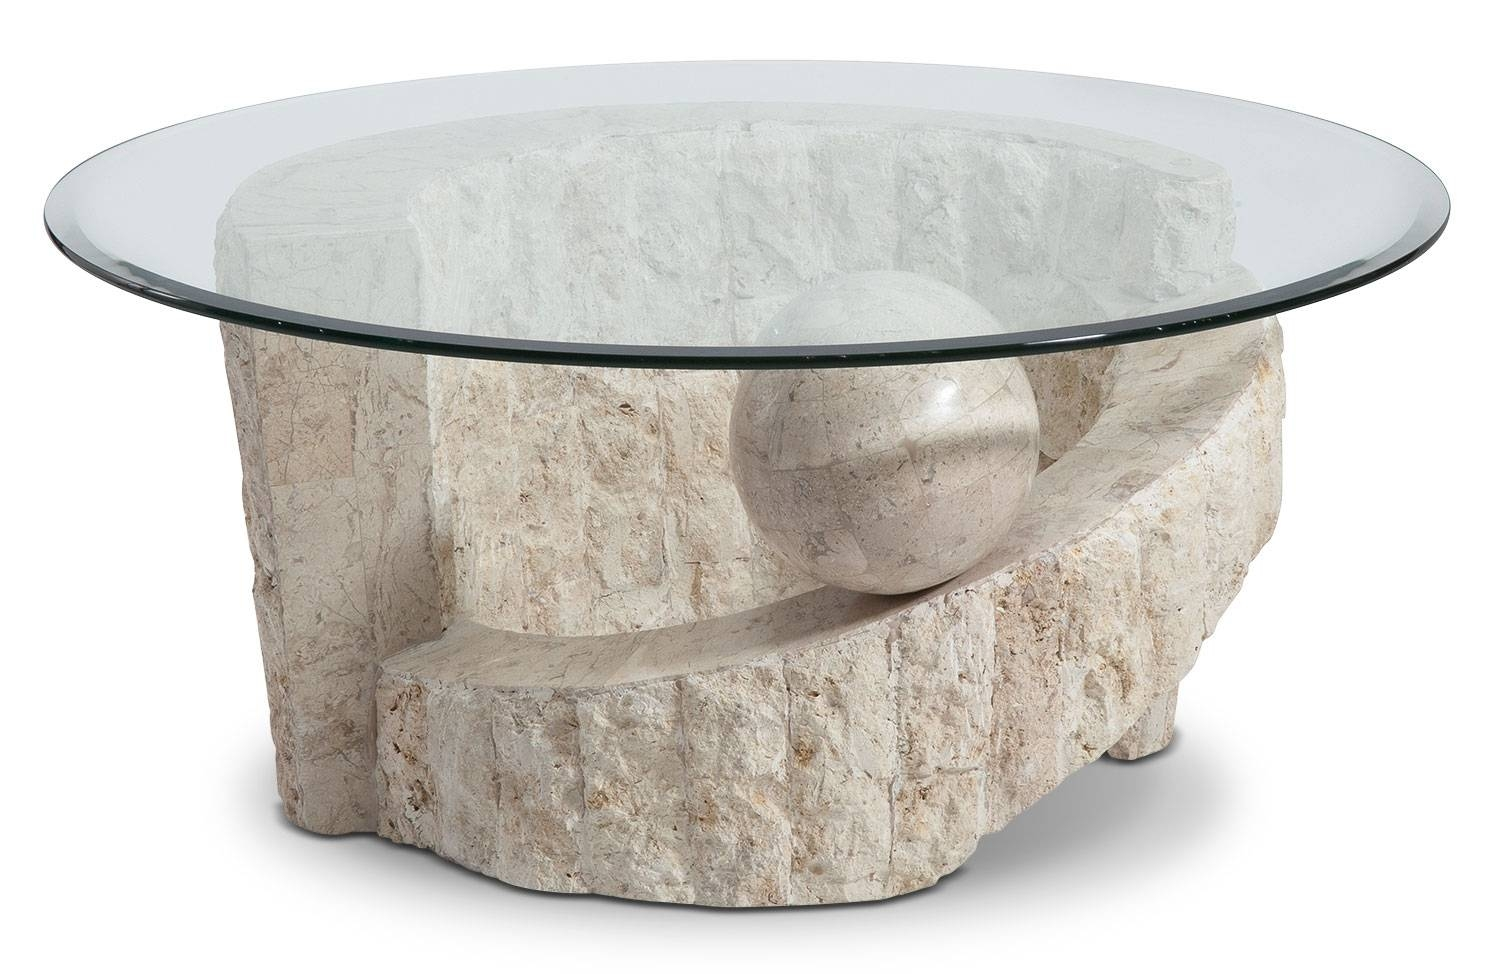 Catalina Coffee Table | The Brick within Stone Coffee Table (Image 4 of 15)